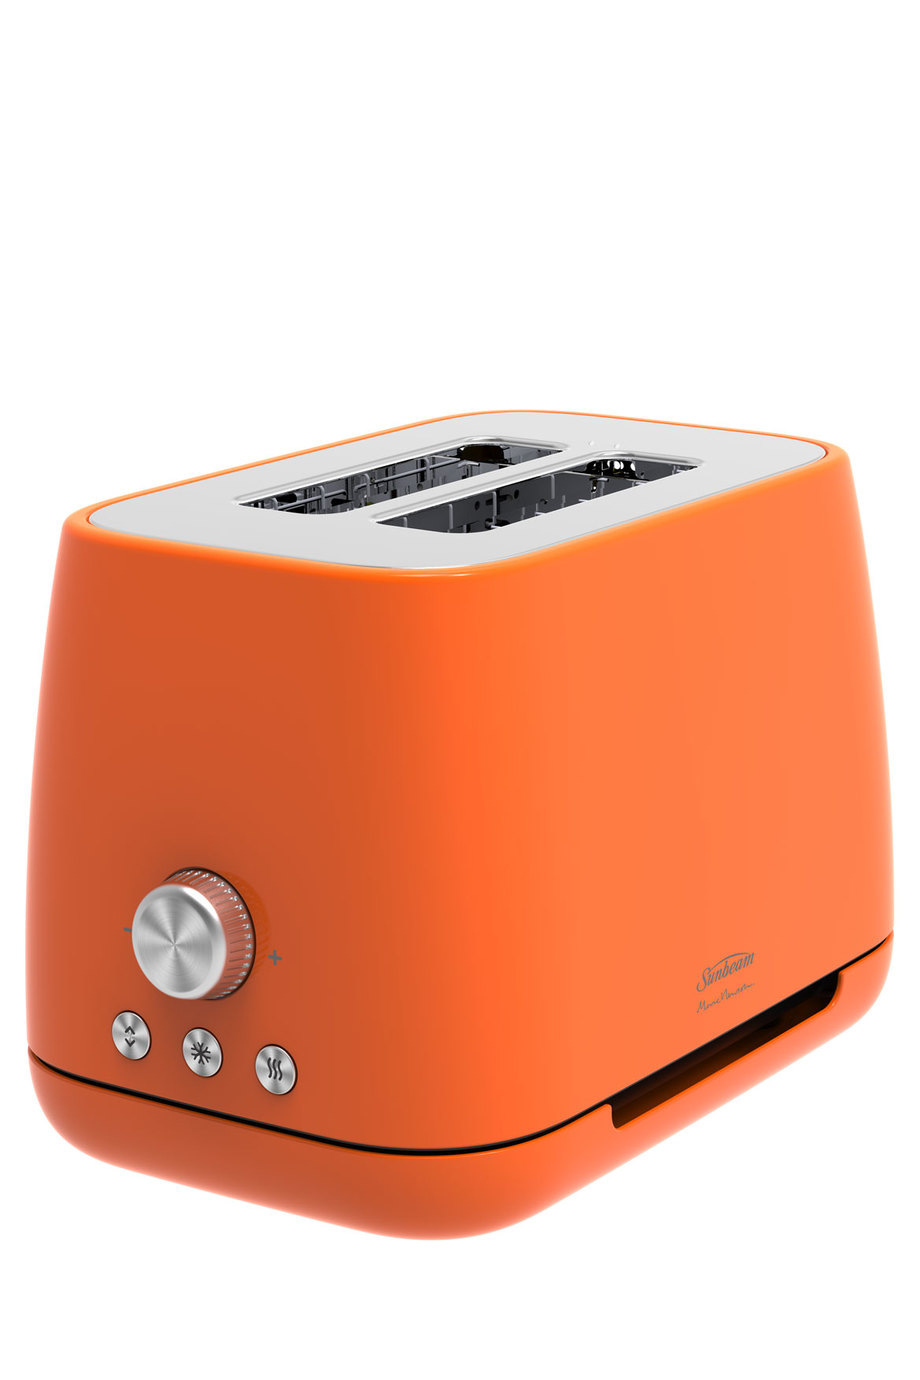 sunbeam ta8820o marc newson motorised 2 slice toaster orange myer online. Black Bedroom Furniture Sets. Home Design Ideas